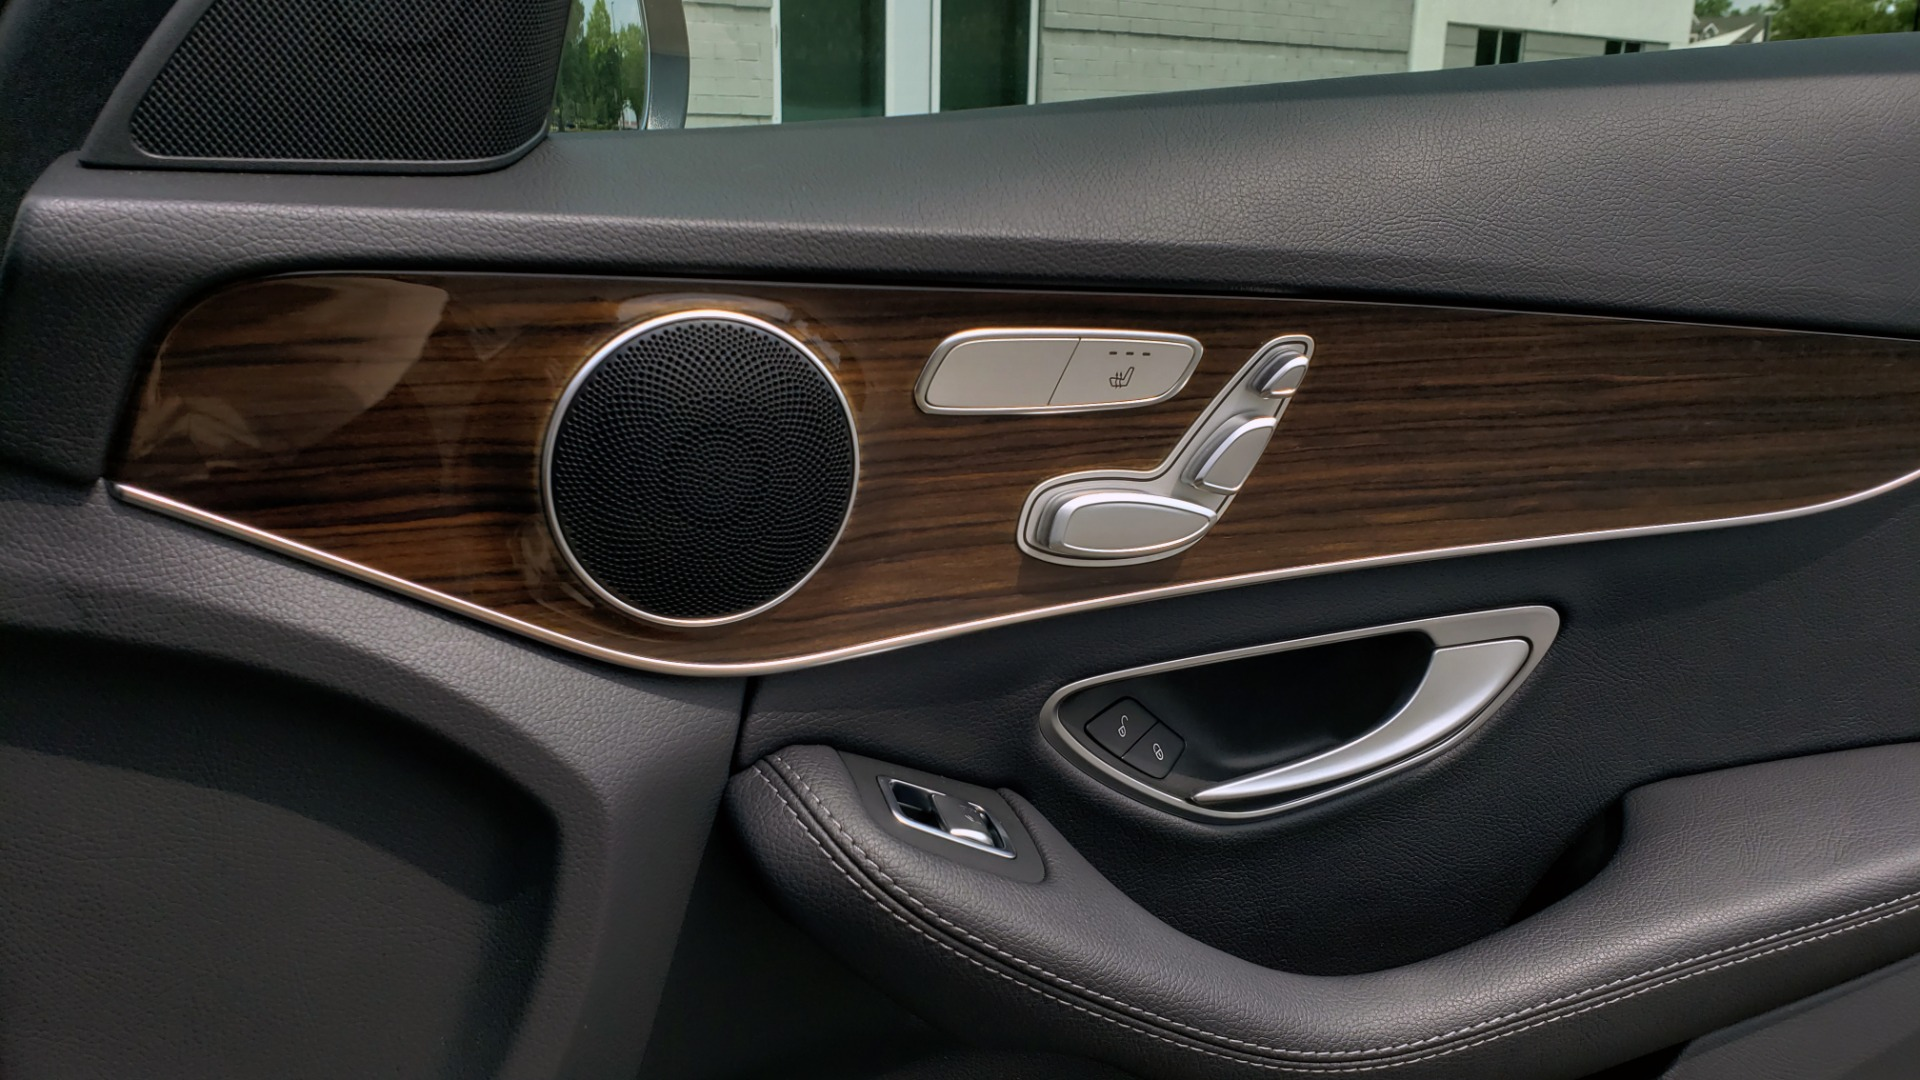 Used 2018 Mercedes-Benz C-CLASS C 300 PREMIUM / HTD STS / APPLE CARPLAY / 18IN WHEELS / REARVIEW for sale $24,795 at Formula Imports in Charlotte NC 28227 68